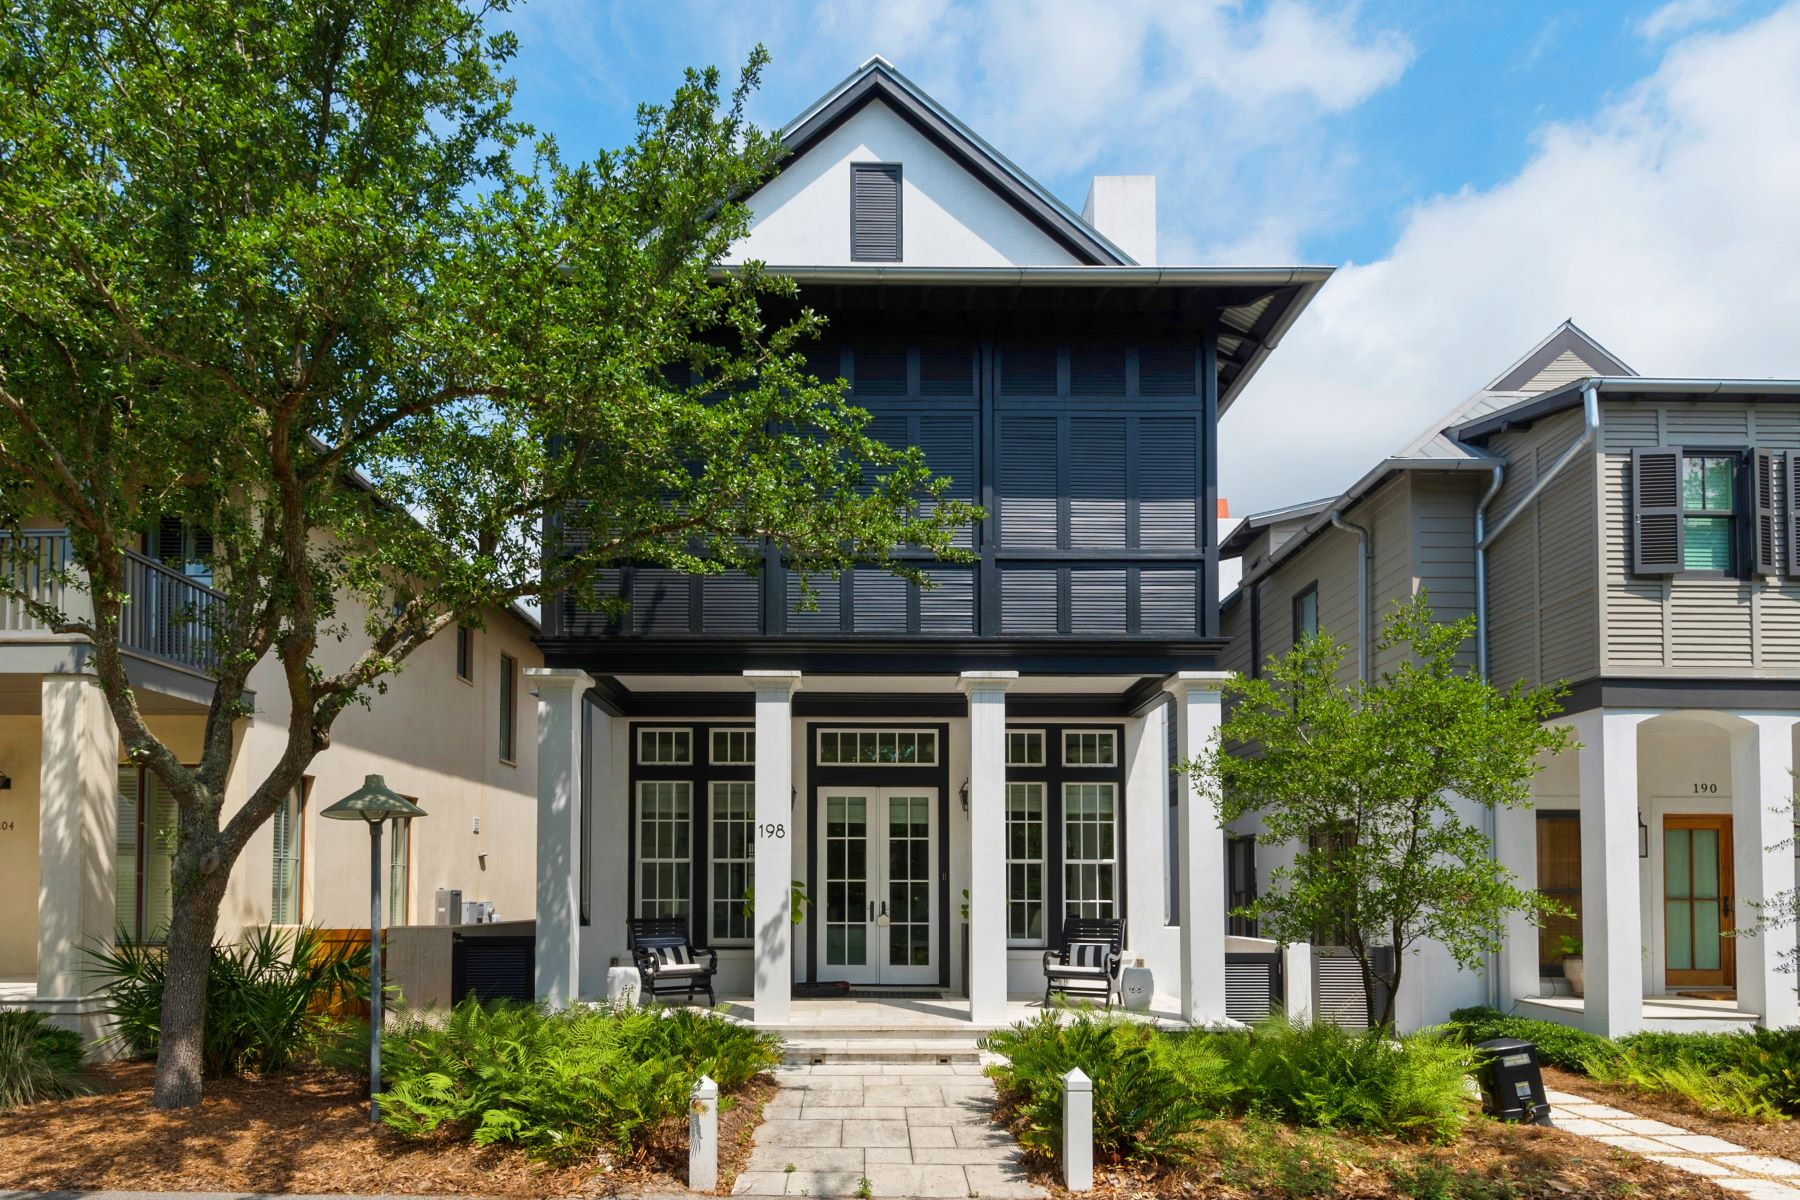 Single Family Homes for Sale at Classic Beach Home with Carriage House in the Heart of Rosemary 198 East Water Street Rosemary Beach, Florida 32461 United States